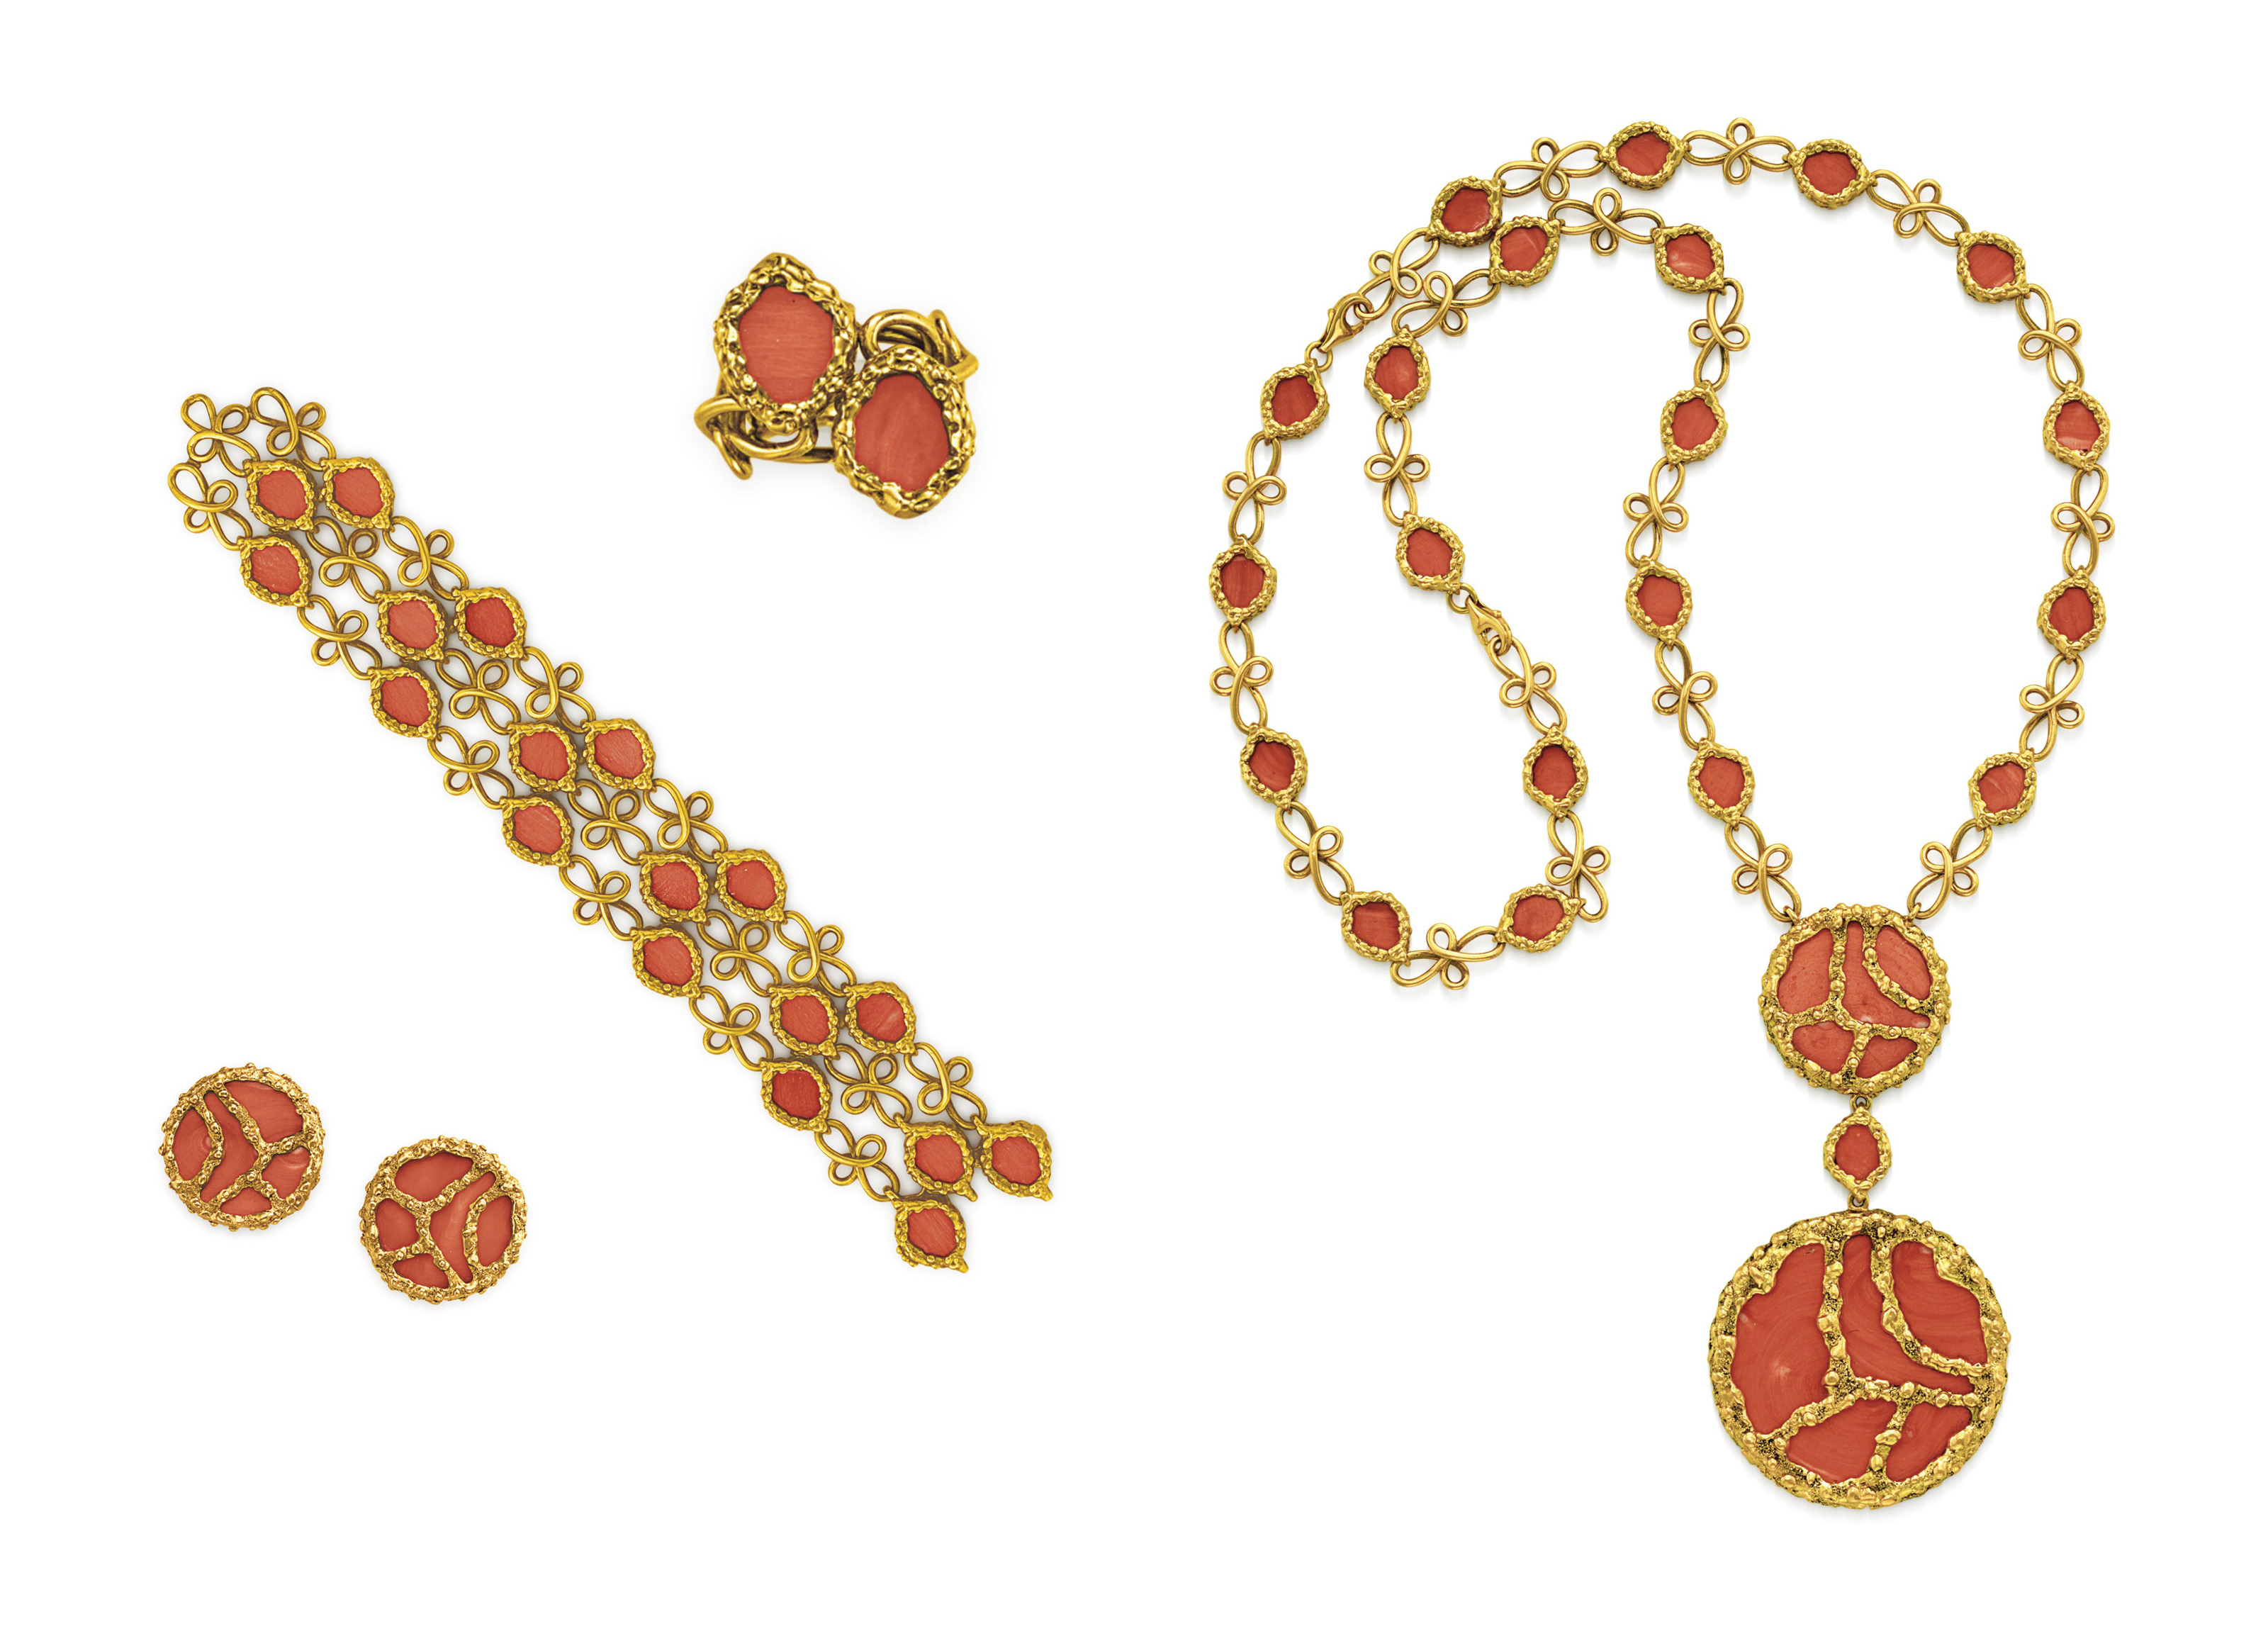 A SUITE OF CORAL AND GOLD JEWELRY, BY MAUBOUSSIN